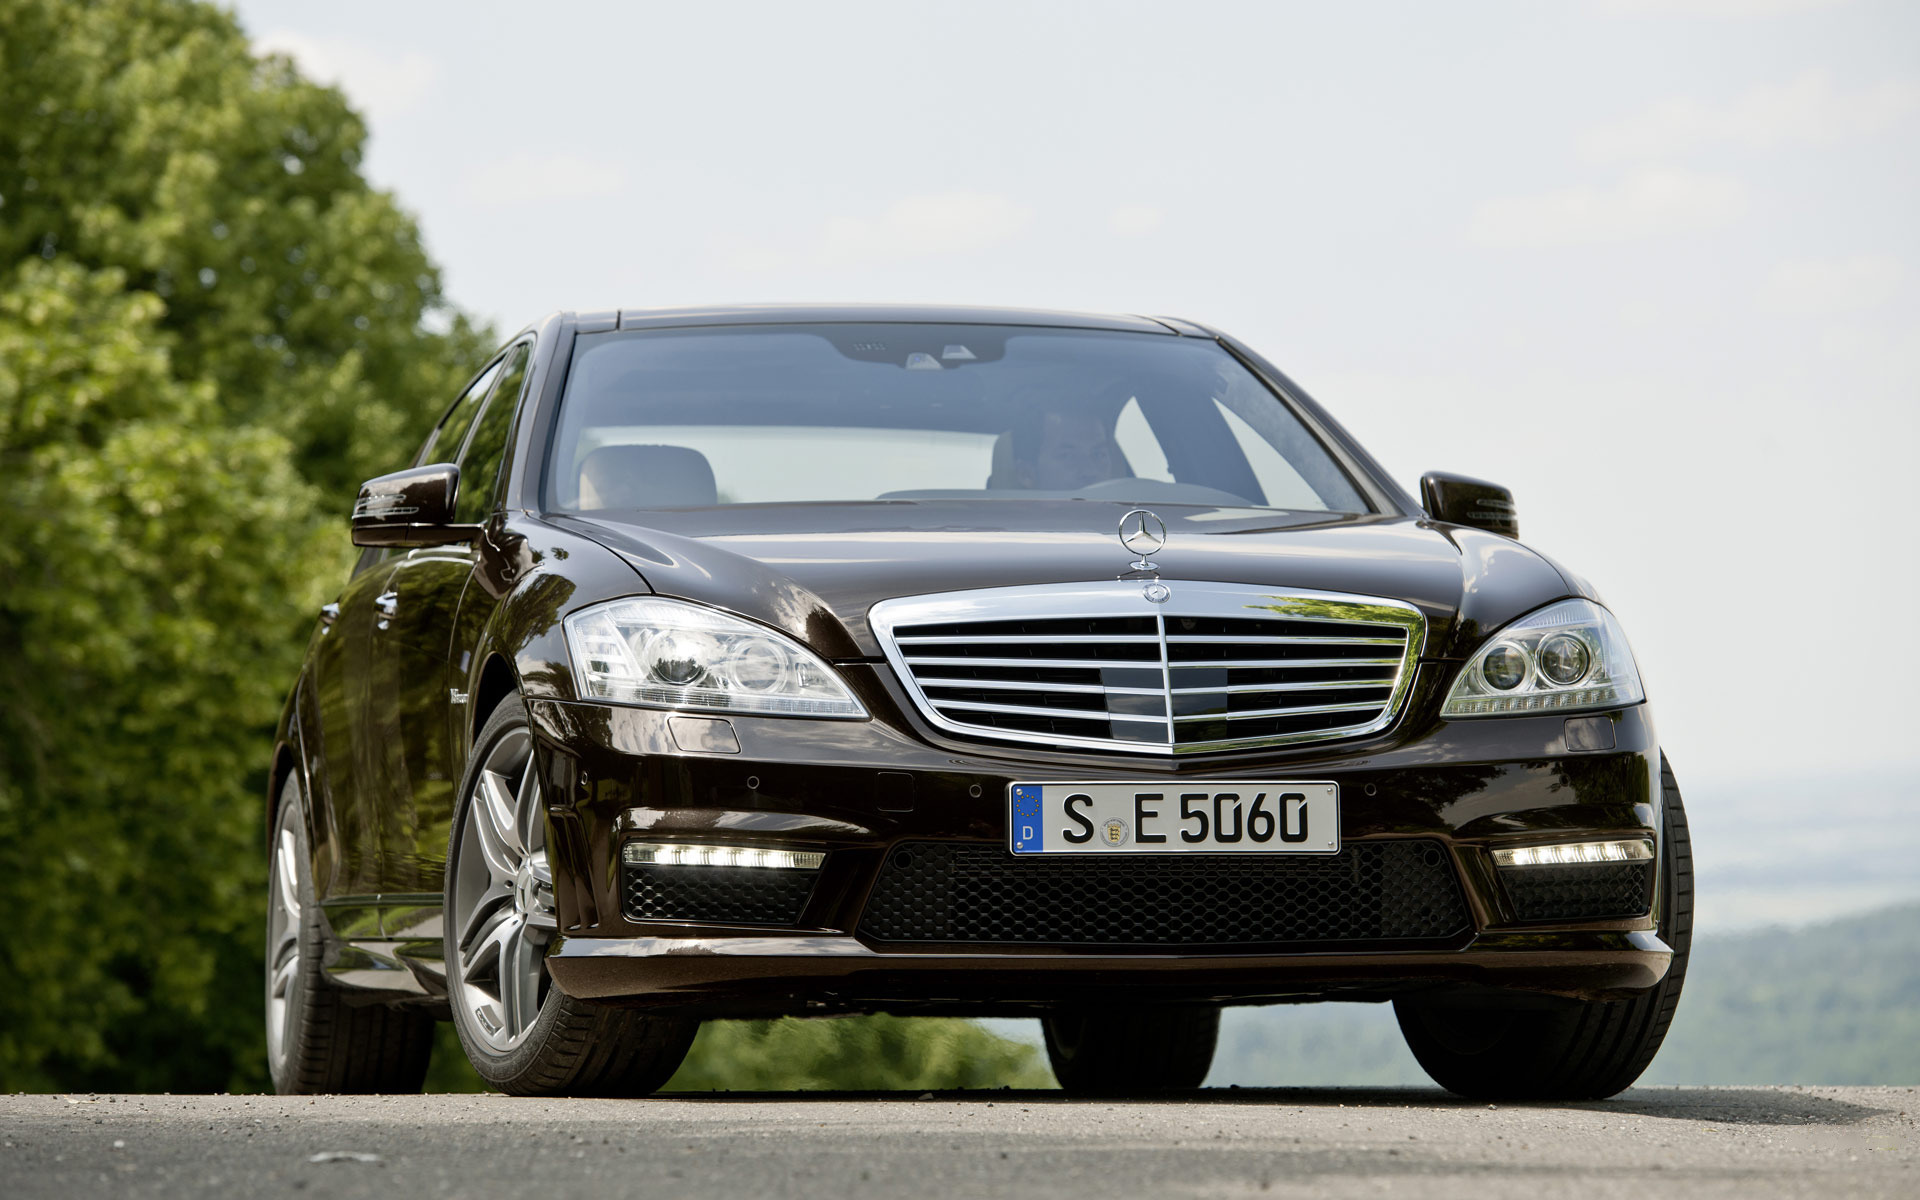 Black car in Mercedes Benz s63 AMG skirts